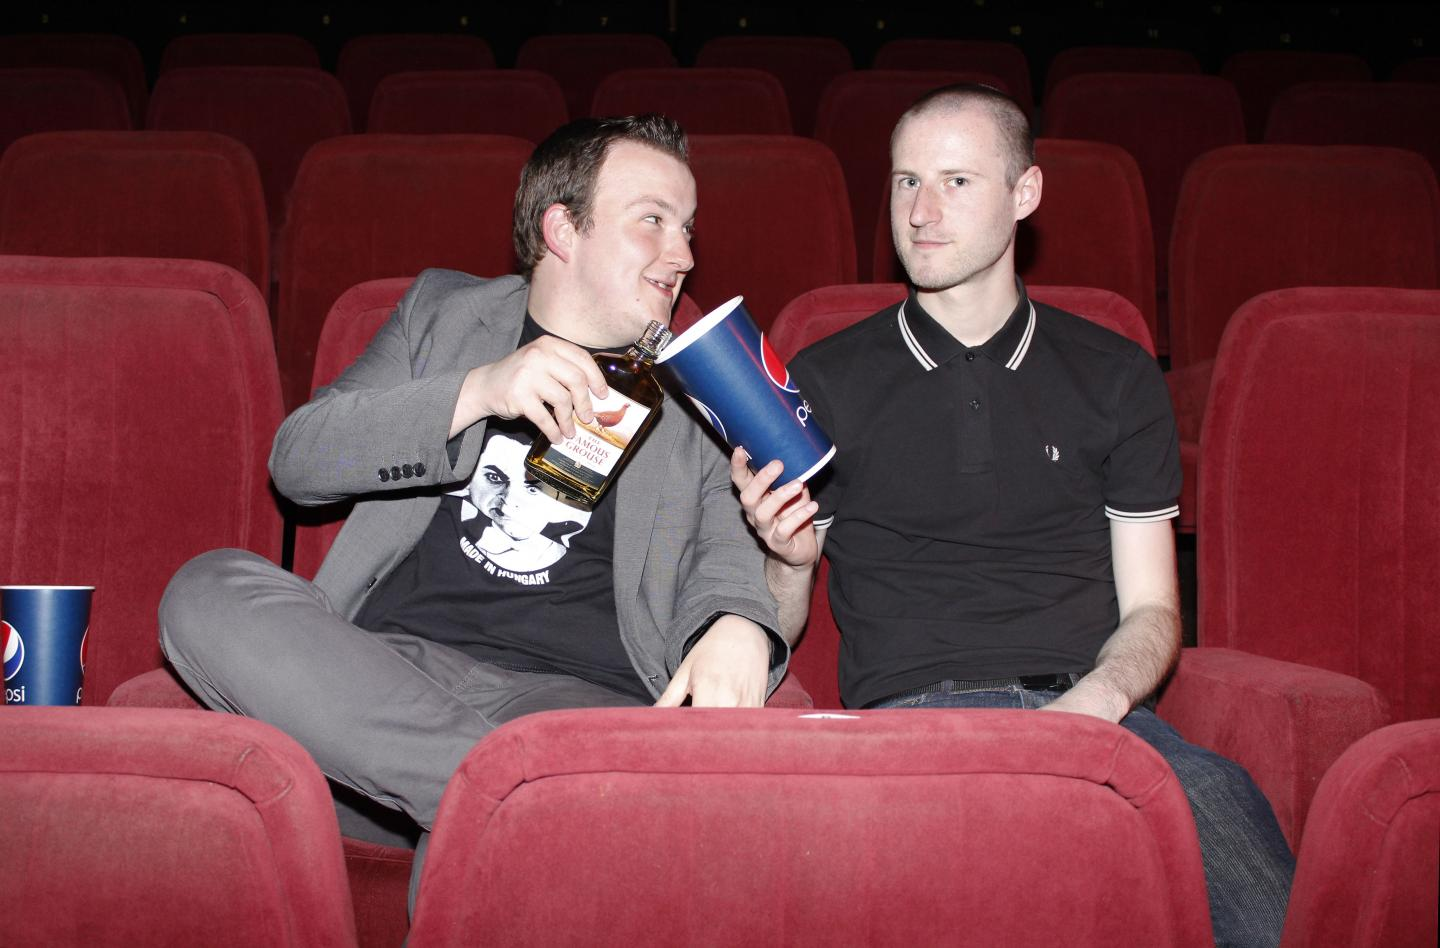 2 Guys Wot Work In A Cinema